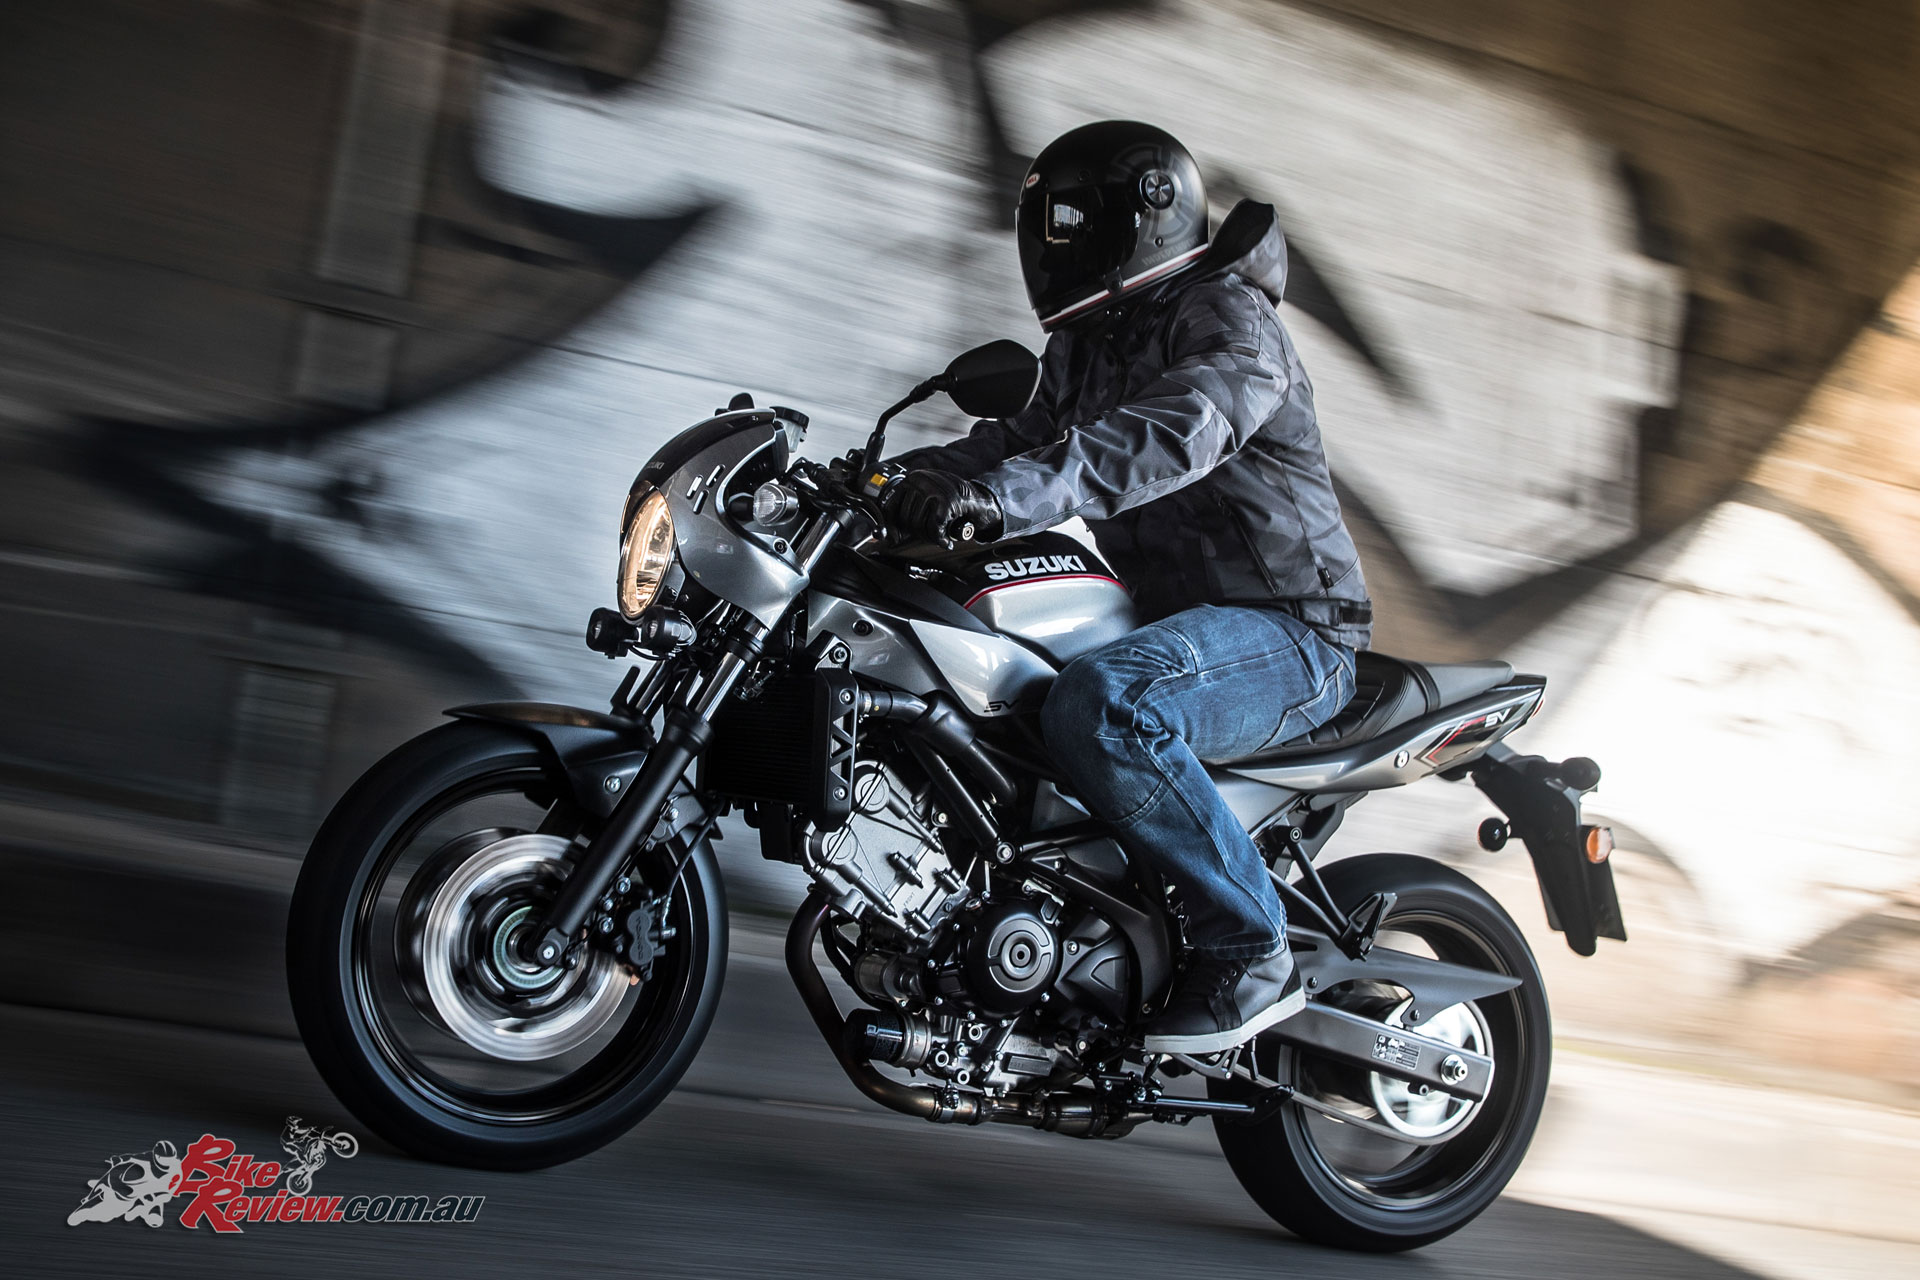 Suzuki Unveil 2018 Sv650x Cafe Racer At Eicma Bike Review